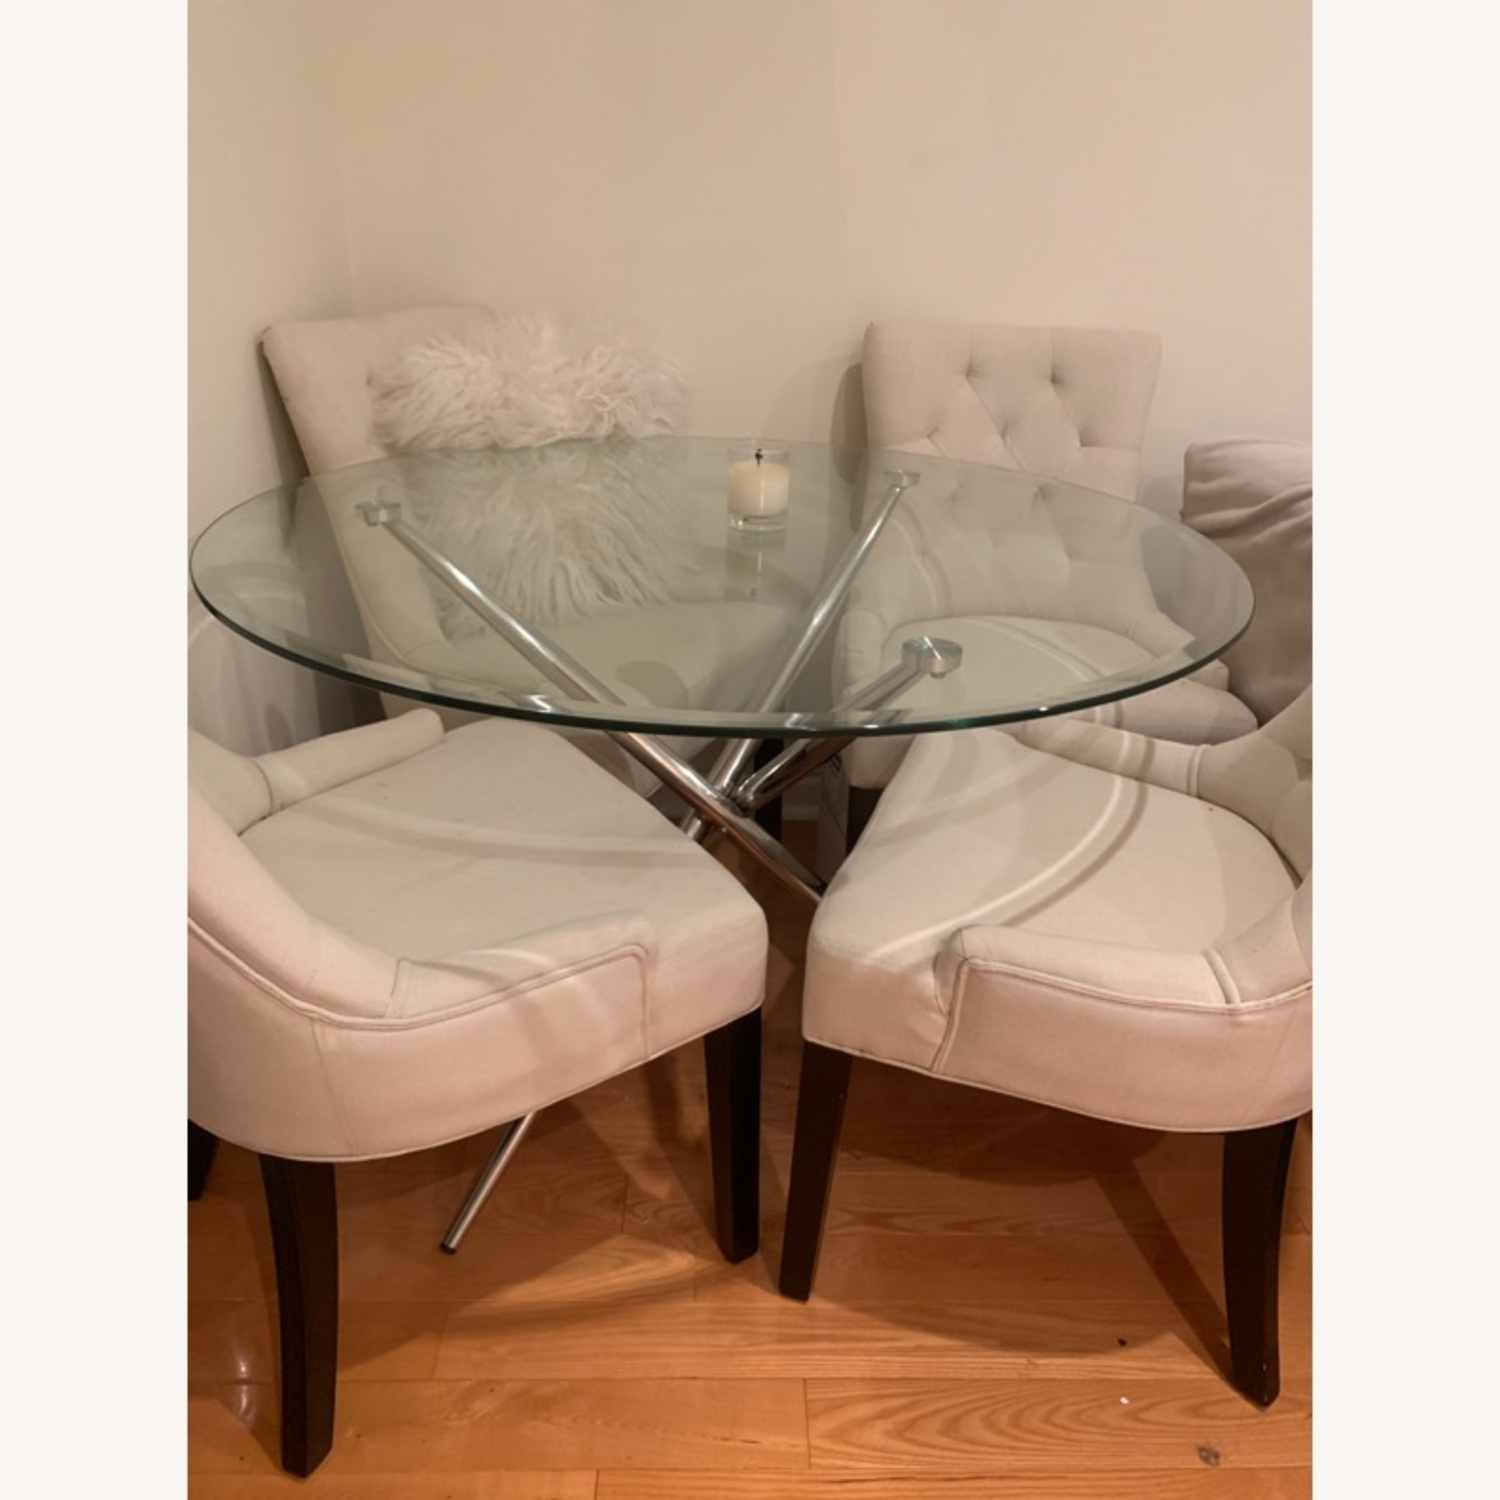 Raymour & Flanigan Round Glass Modern Dining Table - image-1